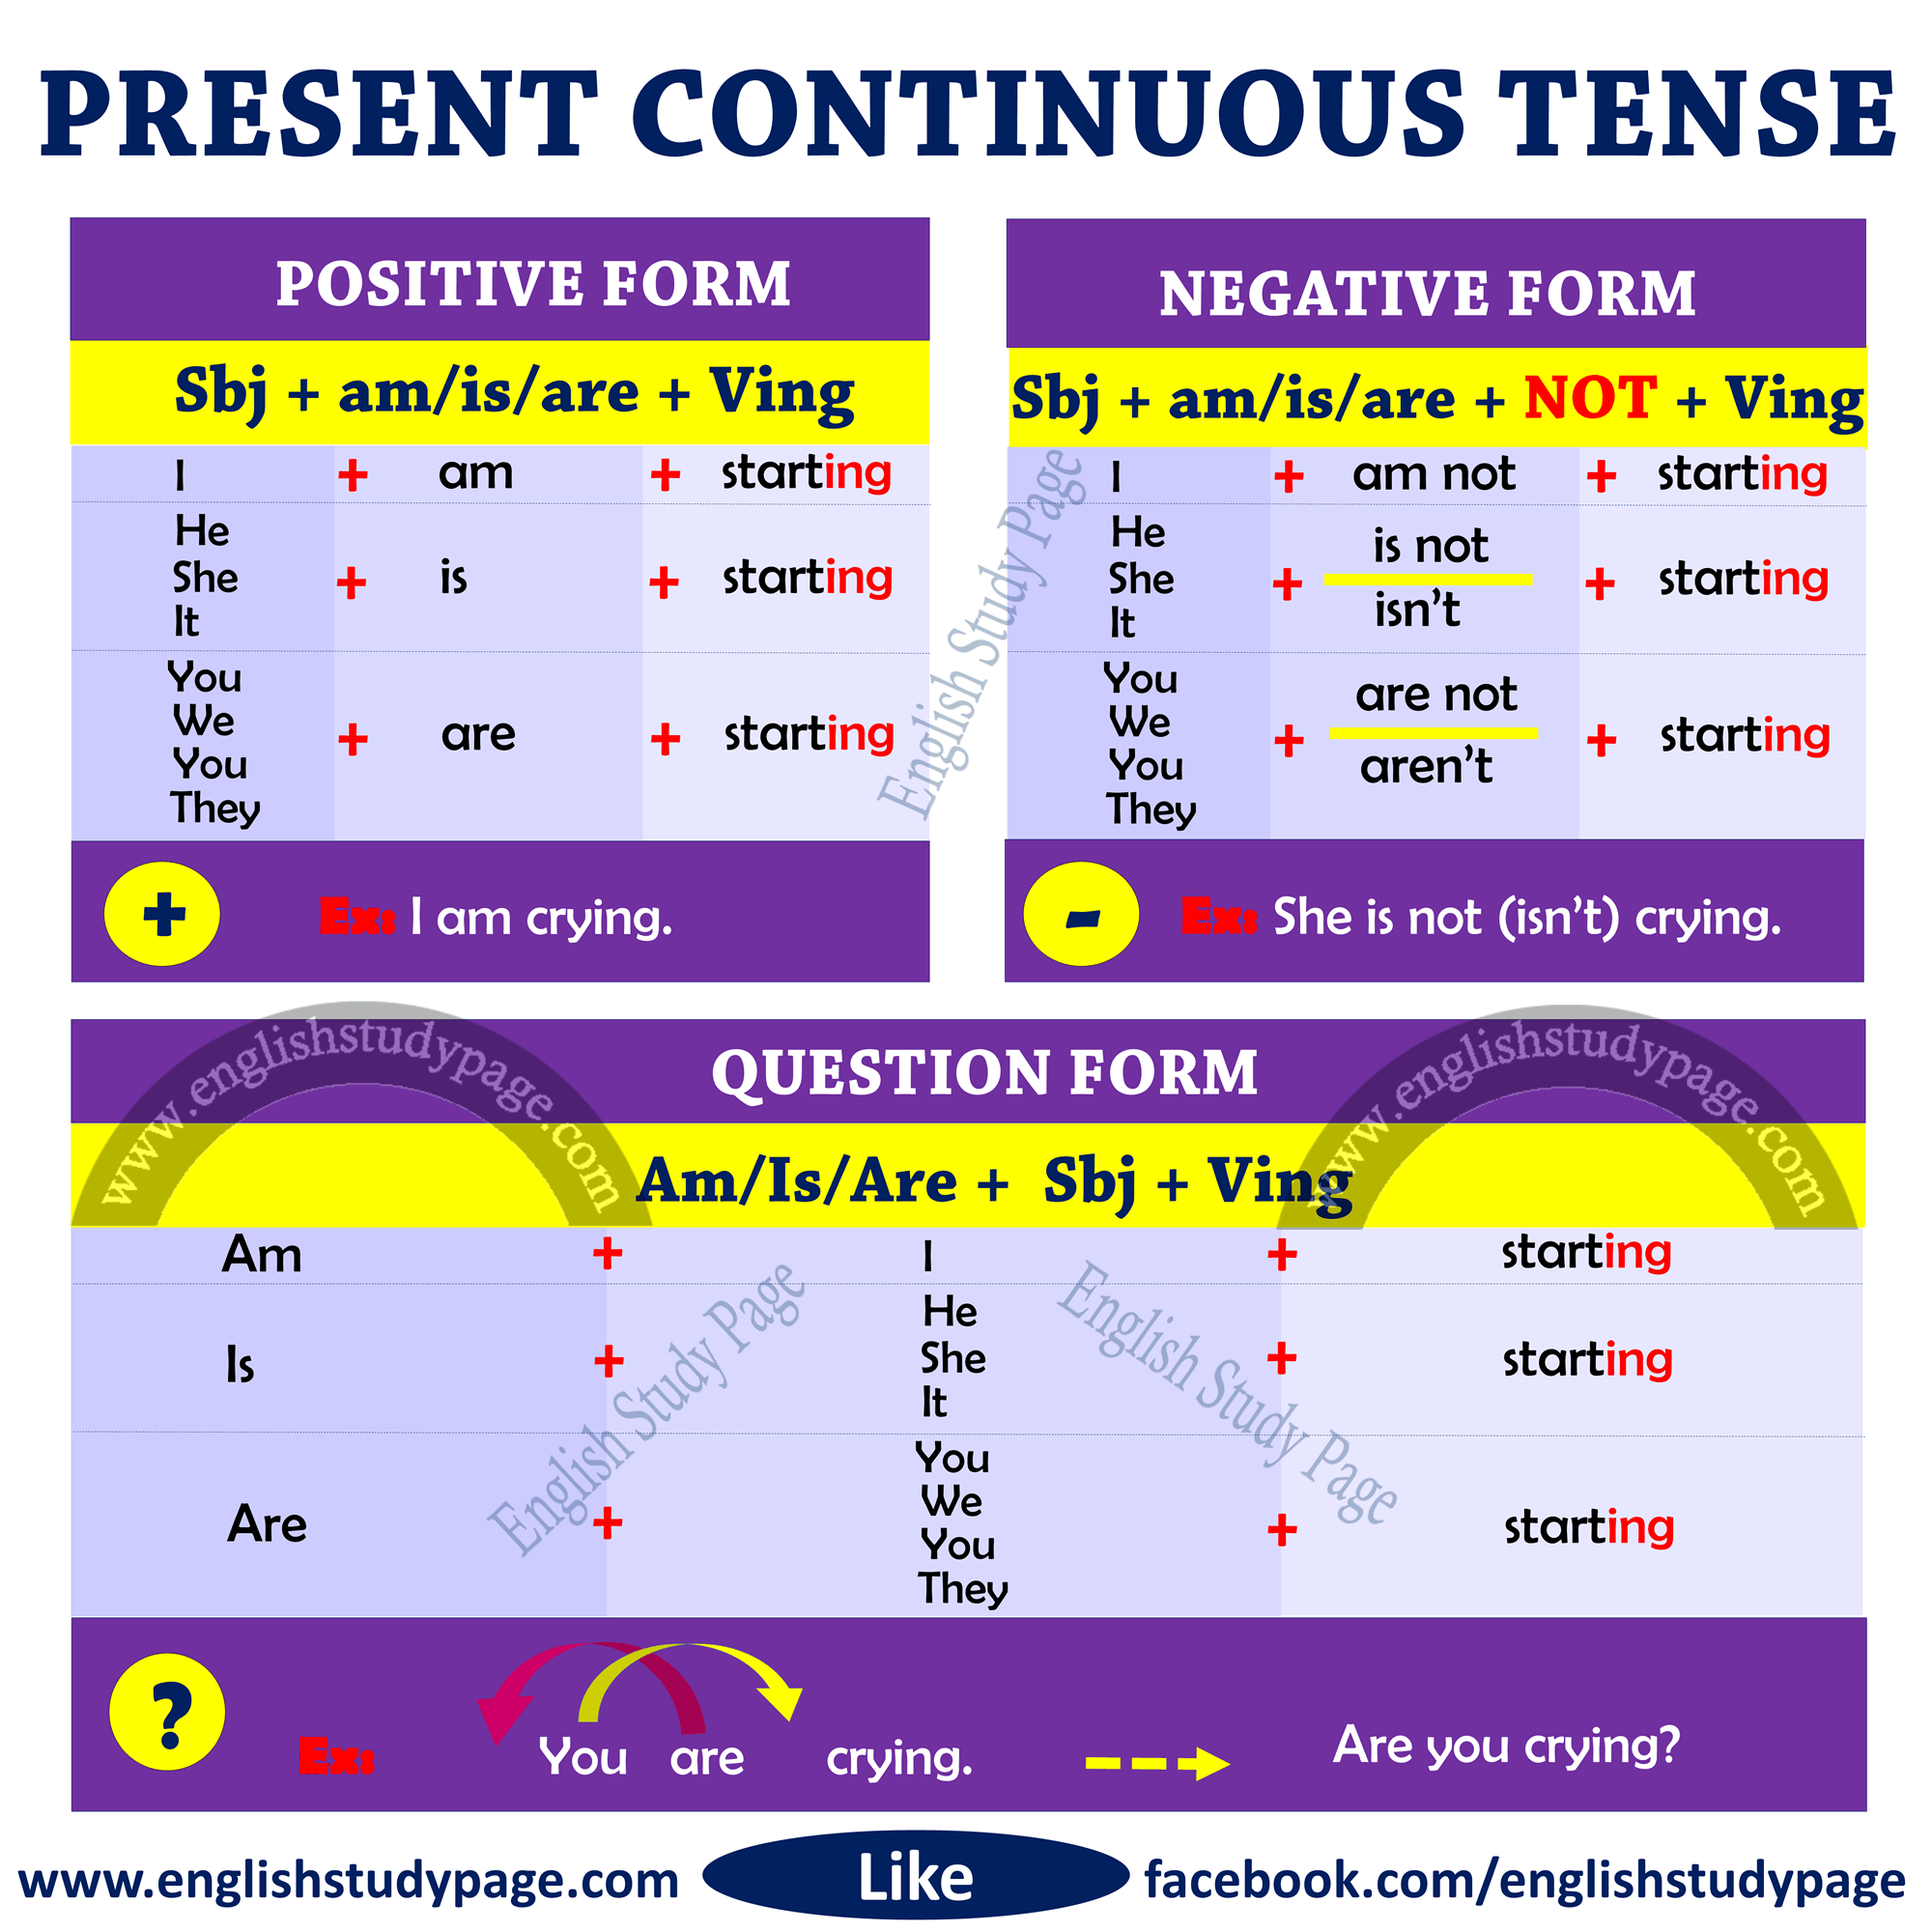 structure of present continuous tense english study page